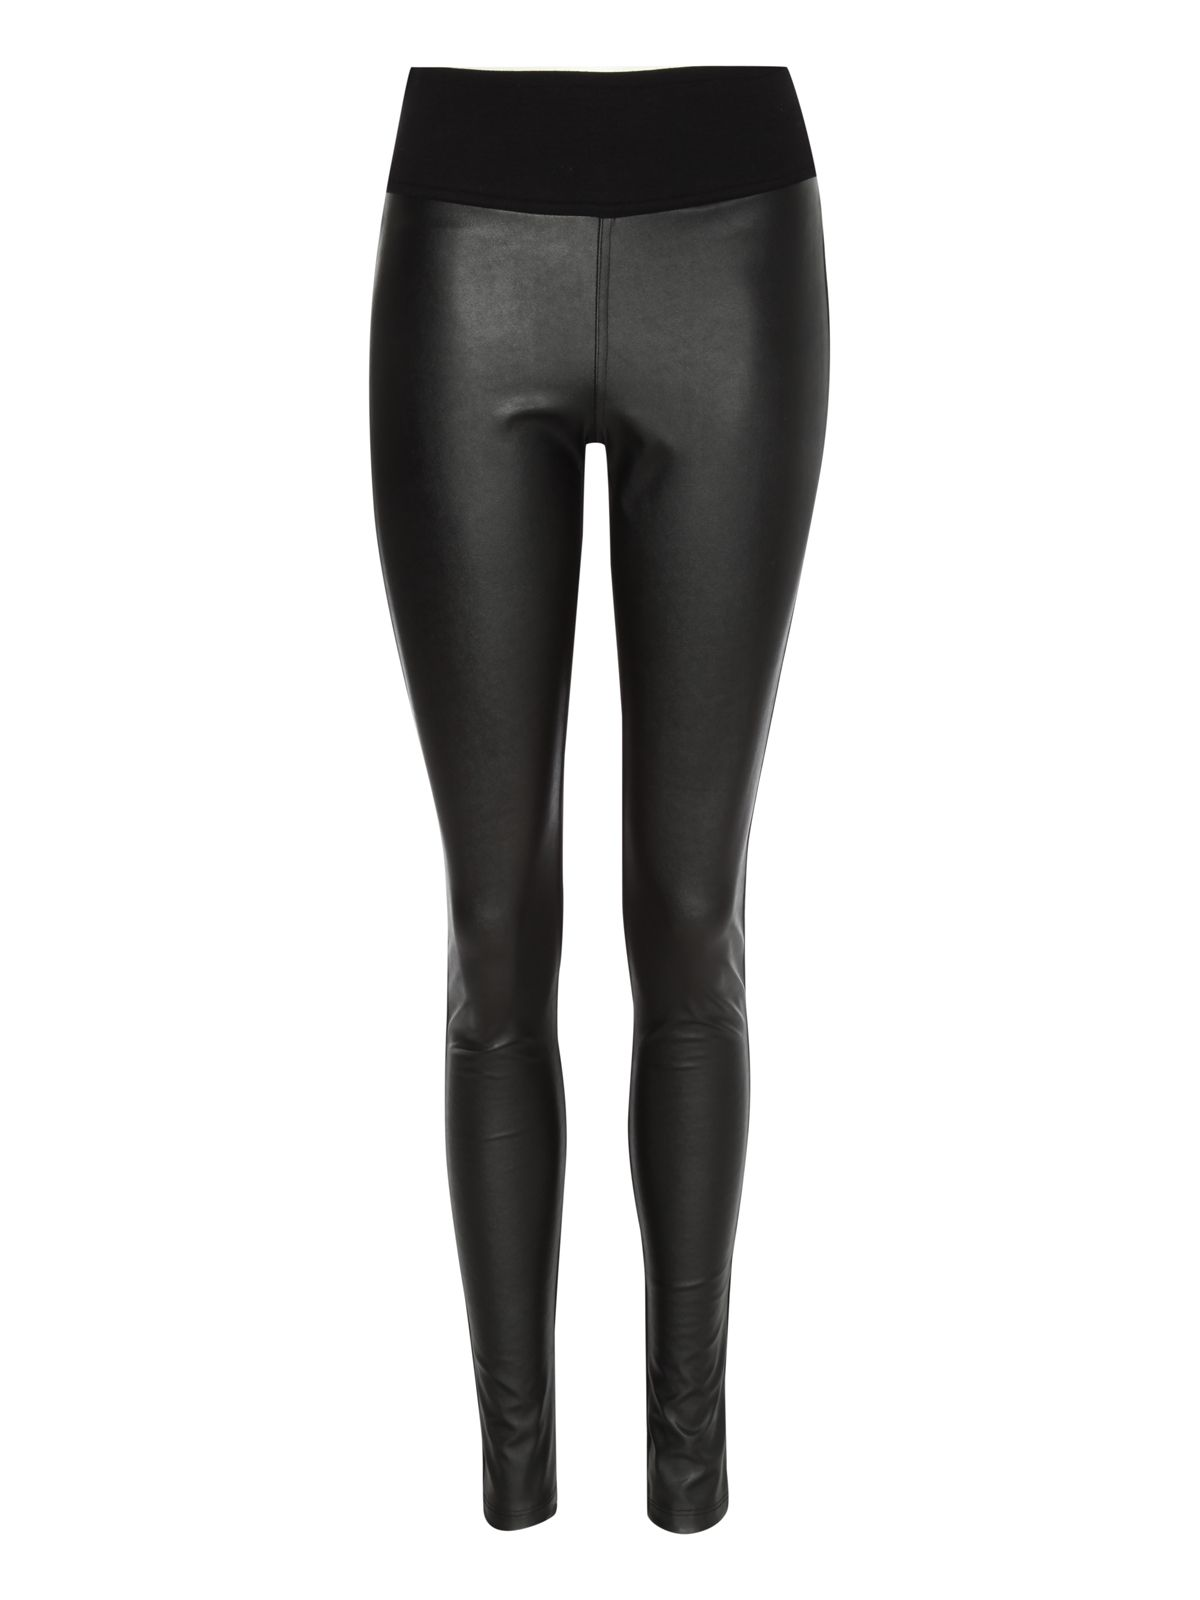 Pu front leggings